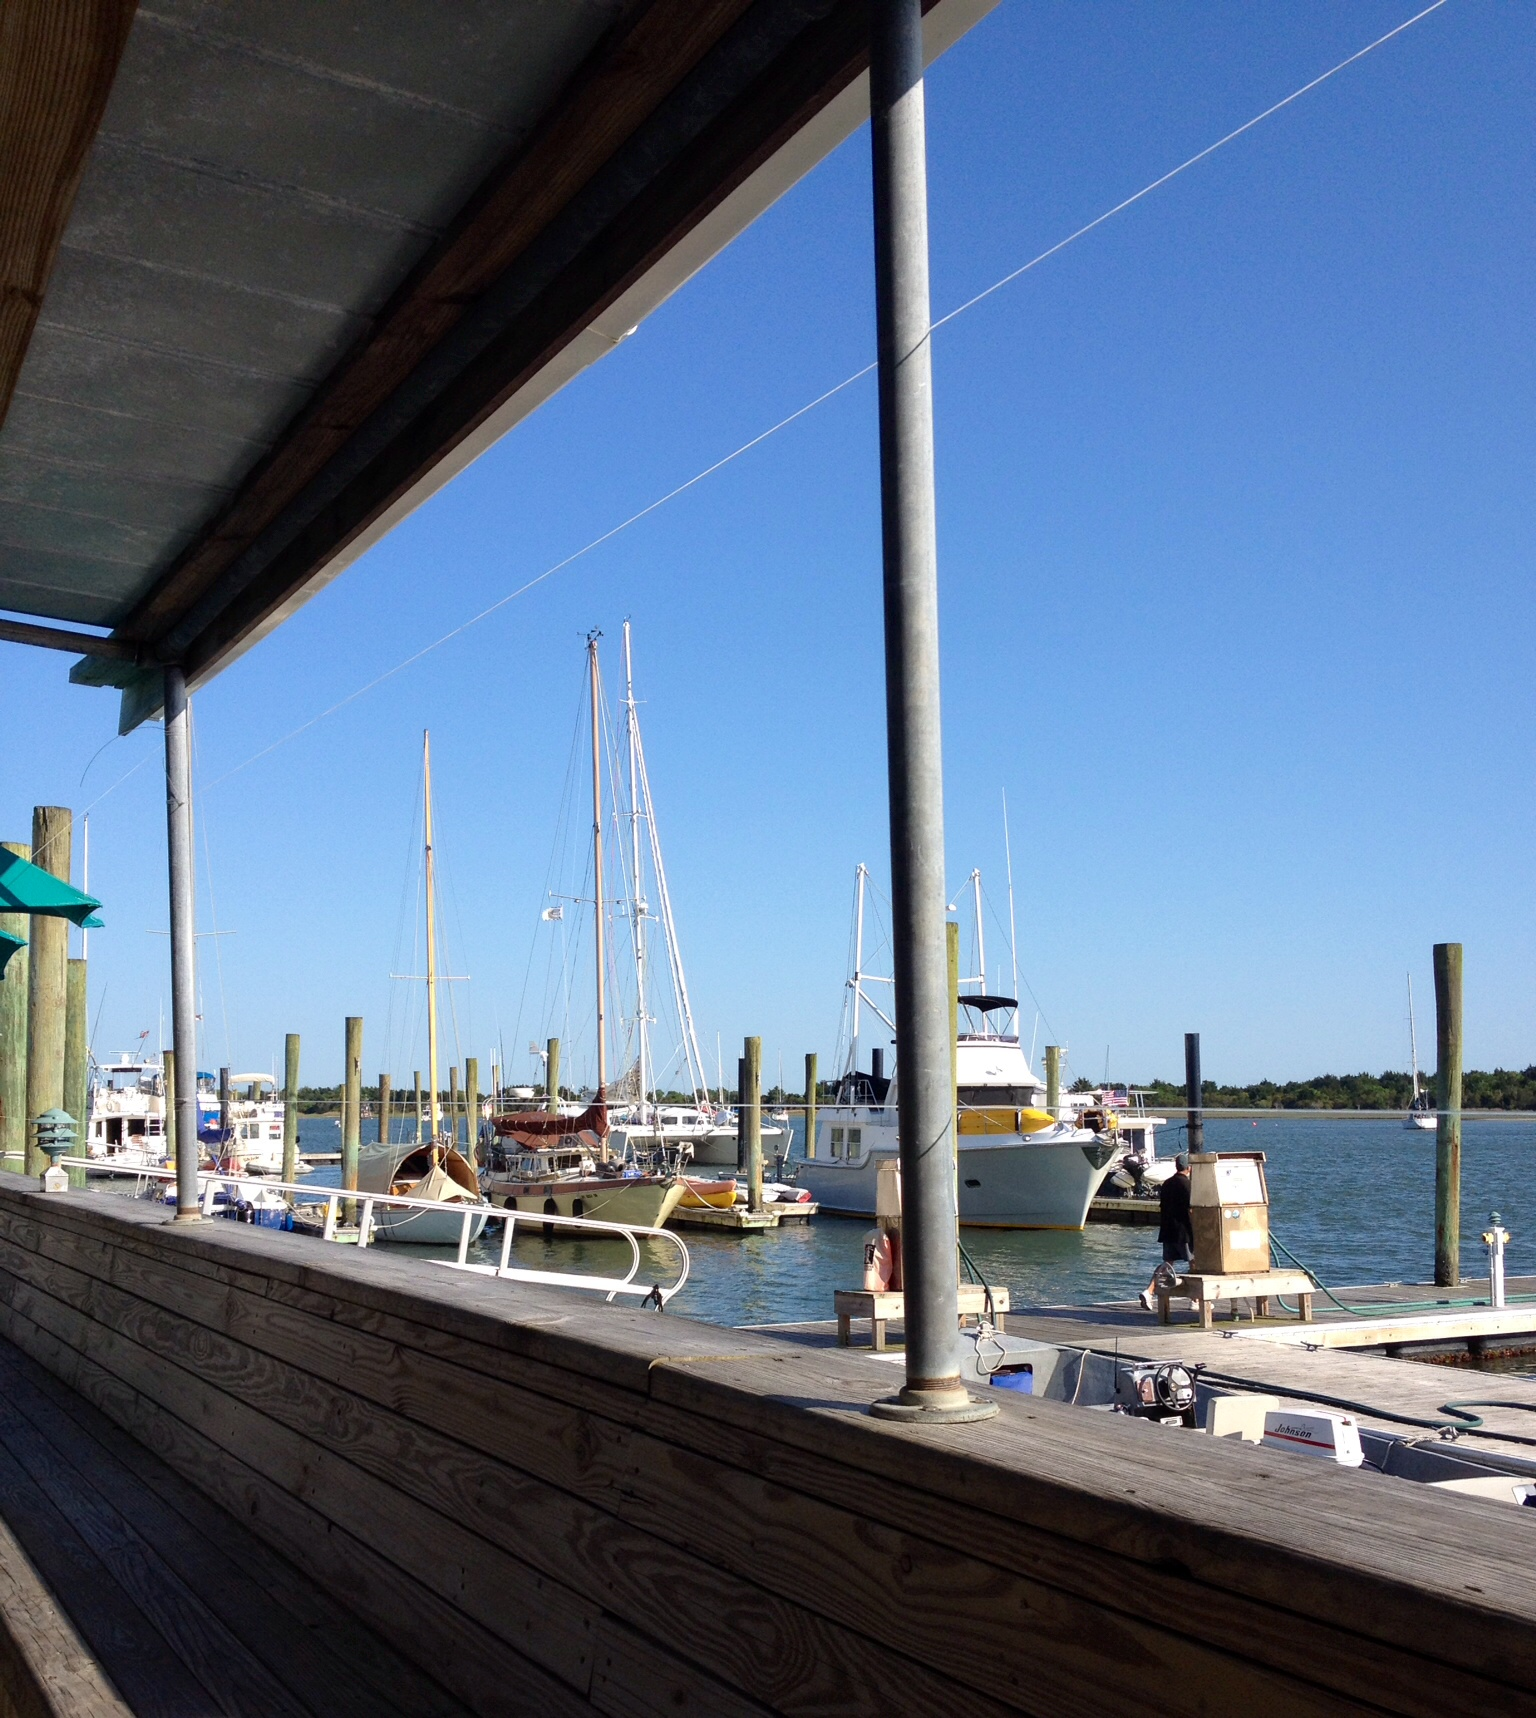 The view from Finz, Beaufort, North Carolina